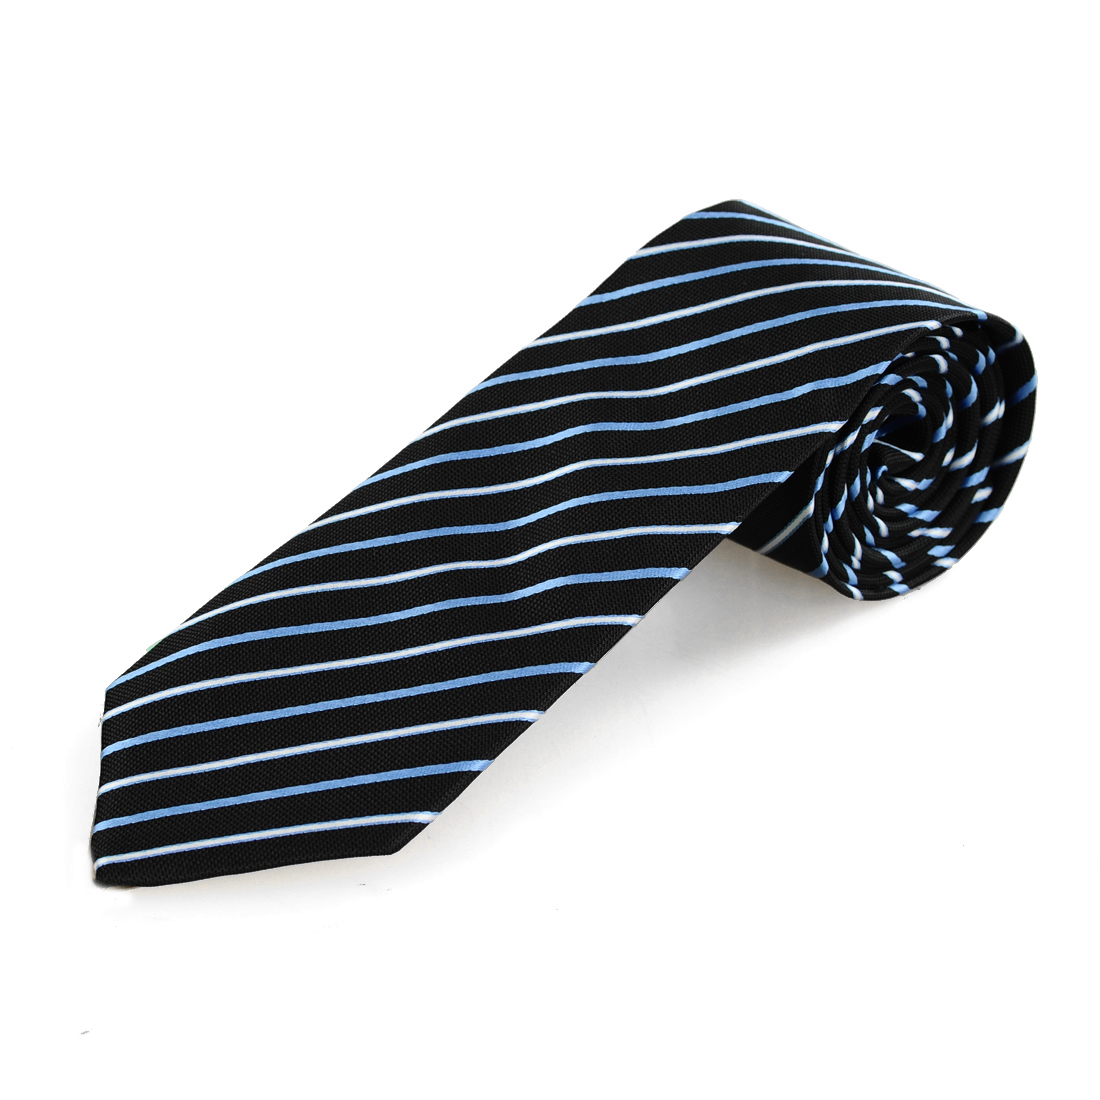 Man 8.5cm Wide Blue White Stripe Print Polyester Self Tie Necktie Black